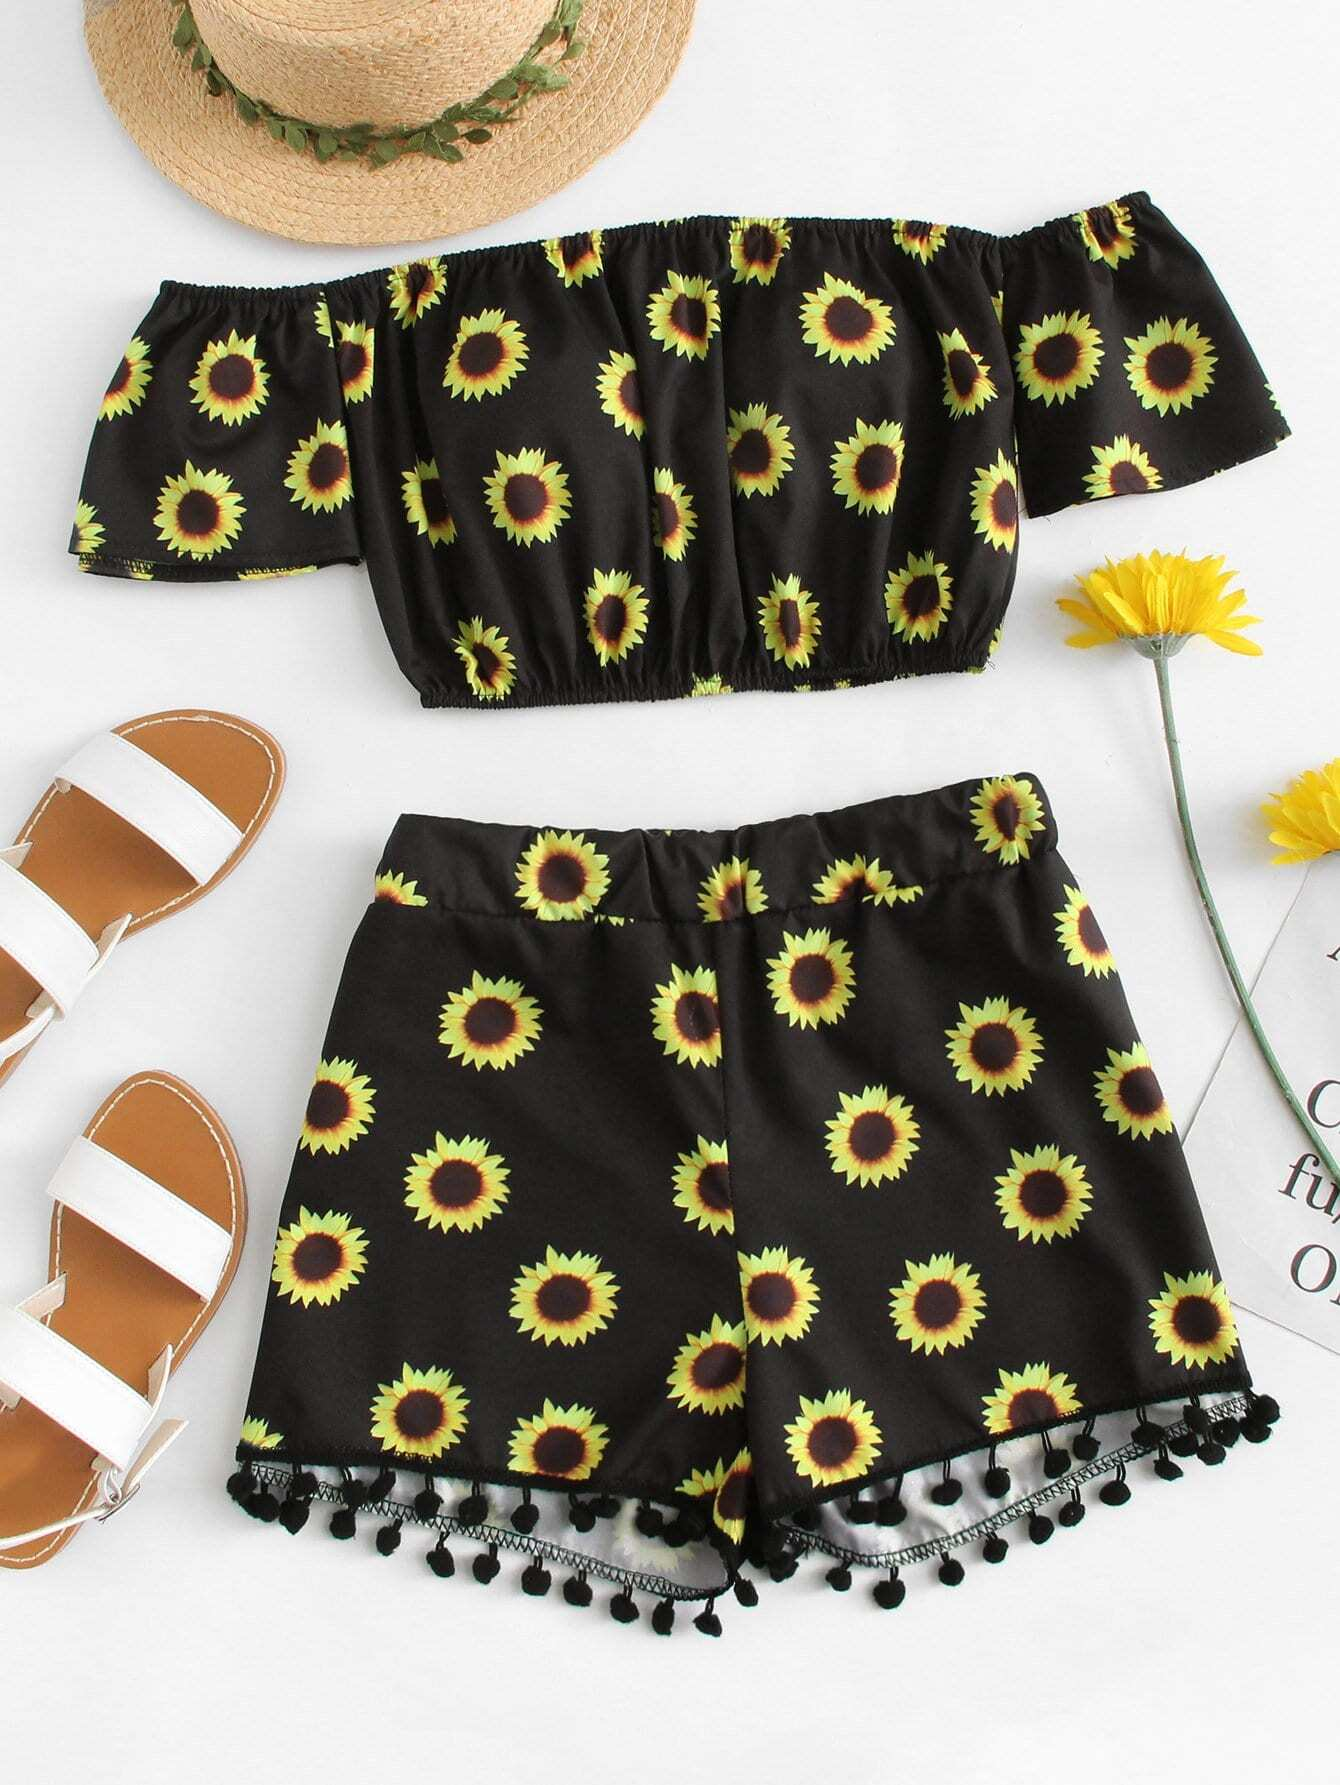 Off Shoulder Floral Print Top With Shorts floral applique bowknot top with shorts